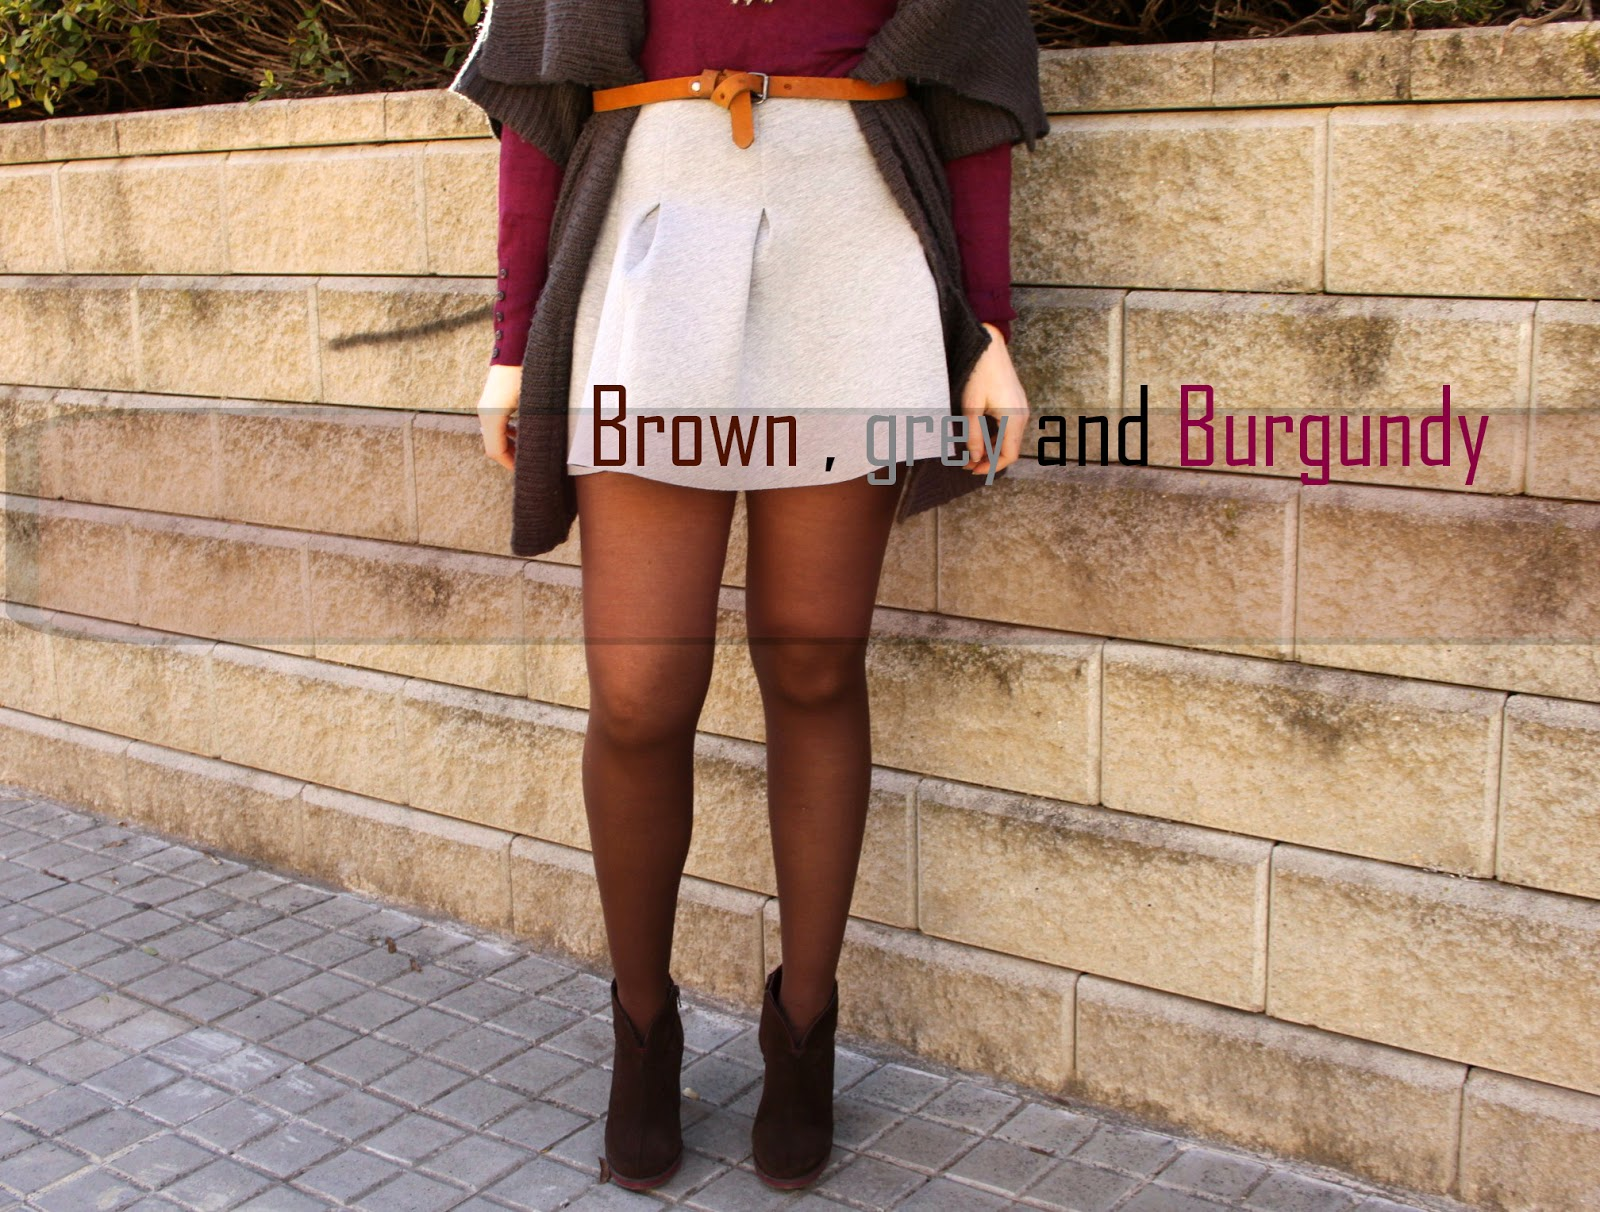 Brown, grey and Burgundy